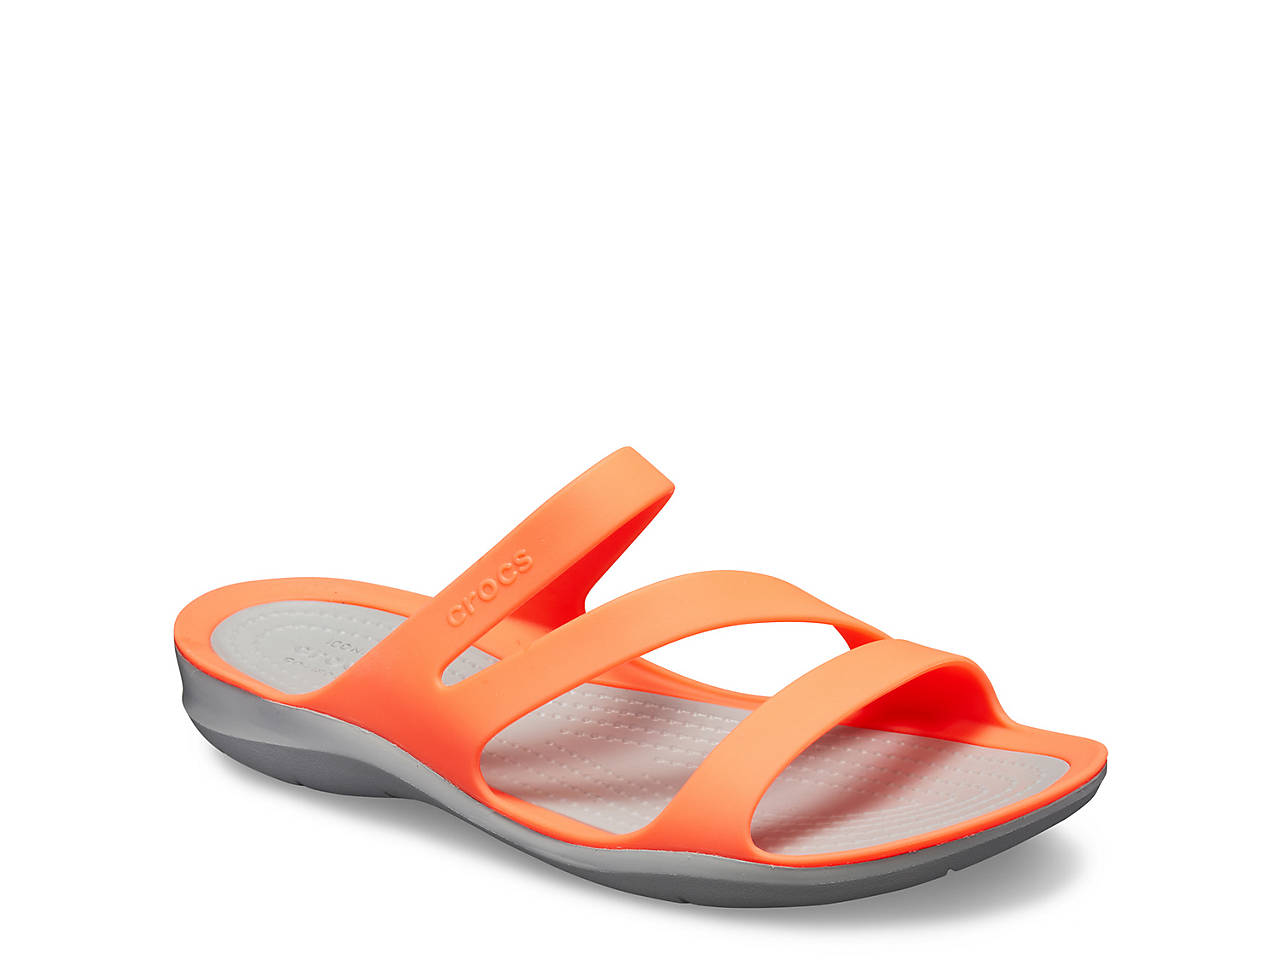 e8f742cc6eb66b Crocs Swiftwater Sandal Women s Shoes